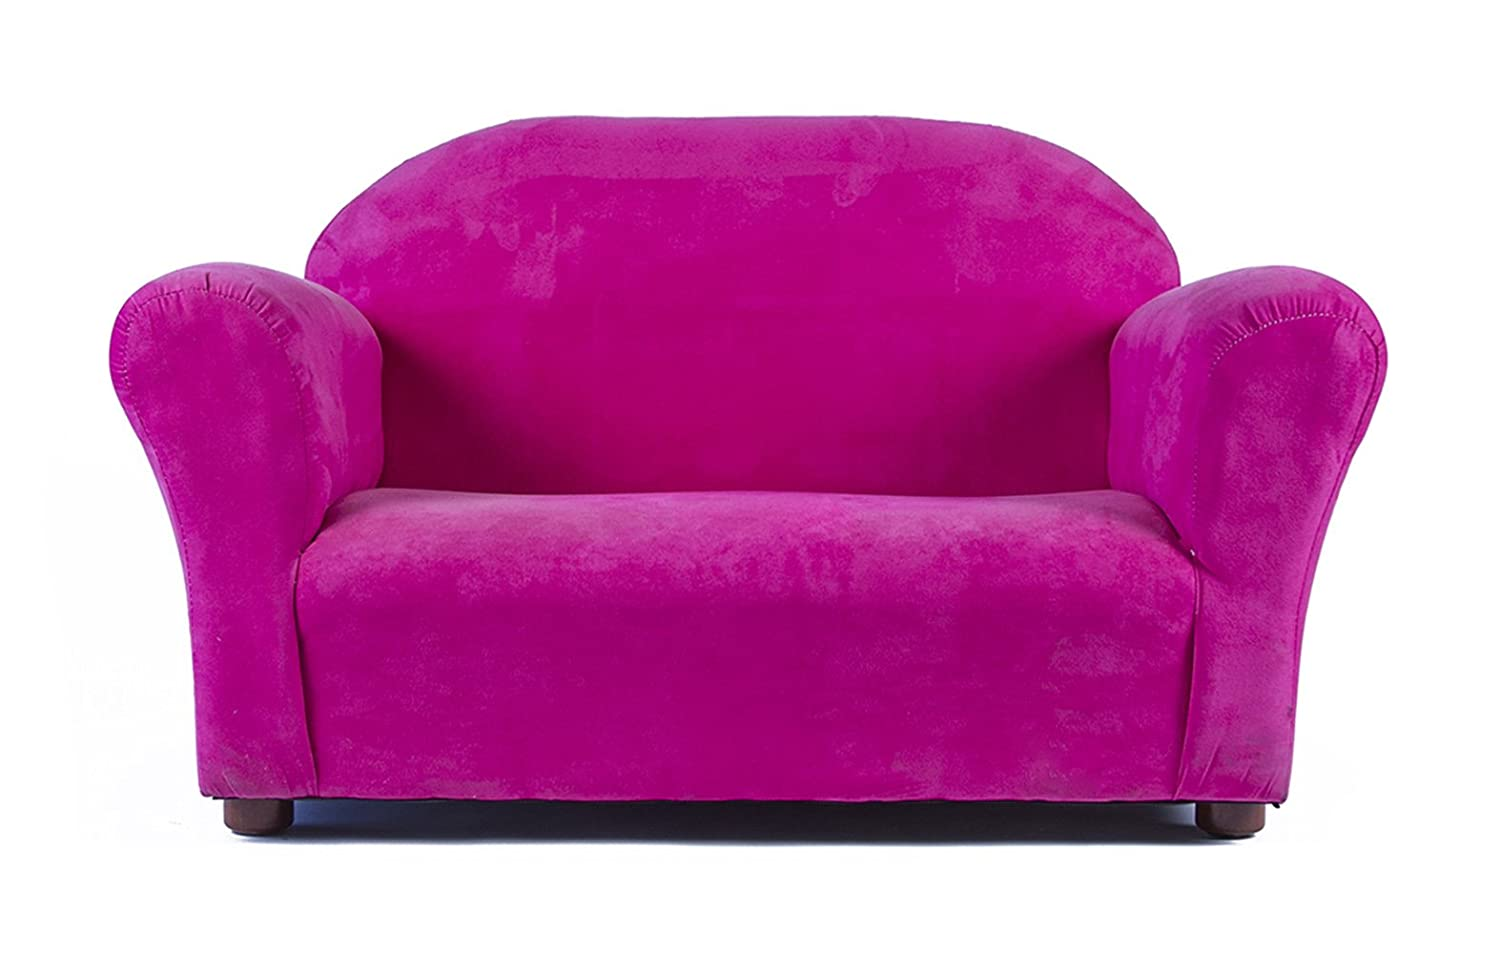 Keet Roundy Microsuede Childrens Sofa, Hot Pink